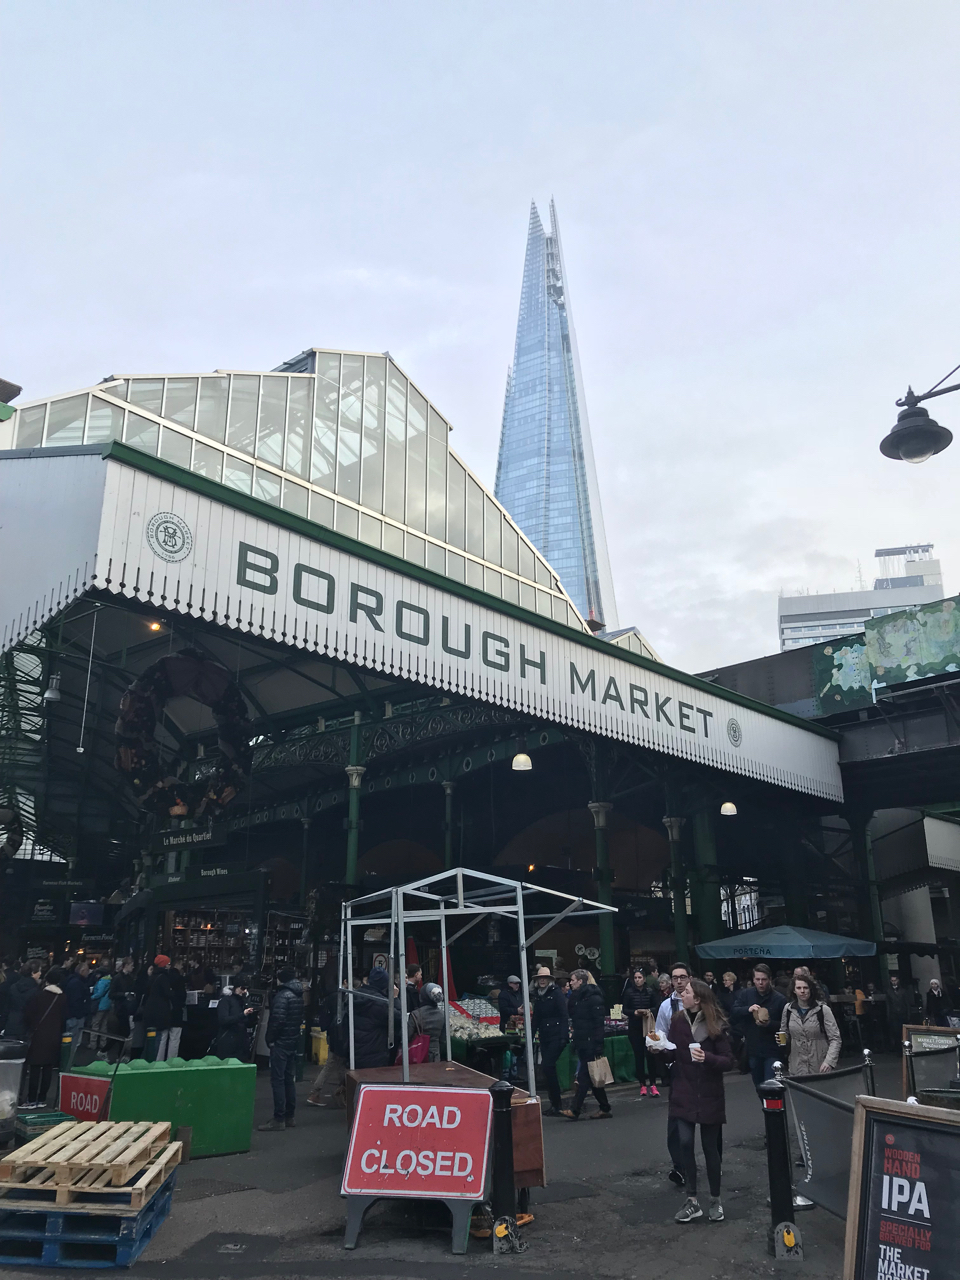 outside view of shoppers visiting Borough Market